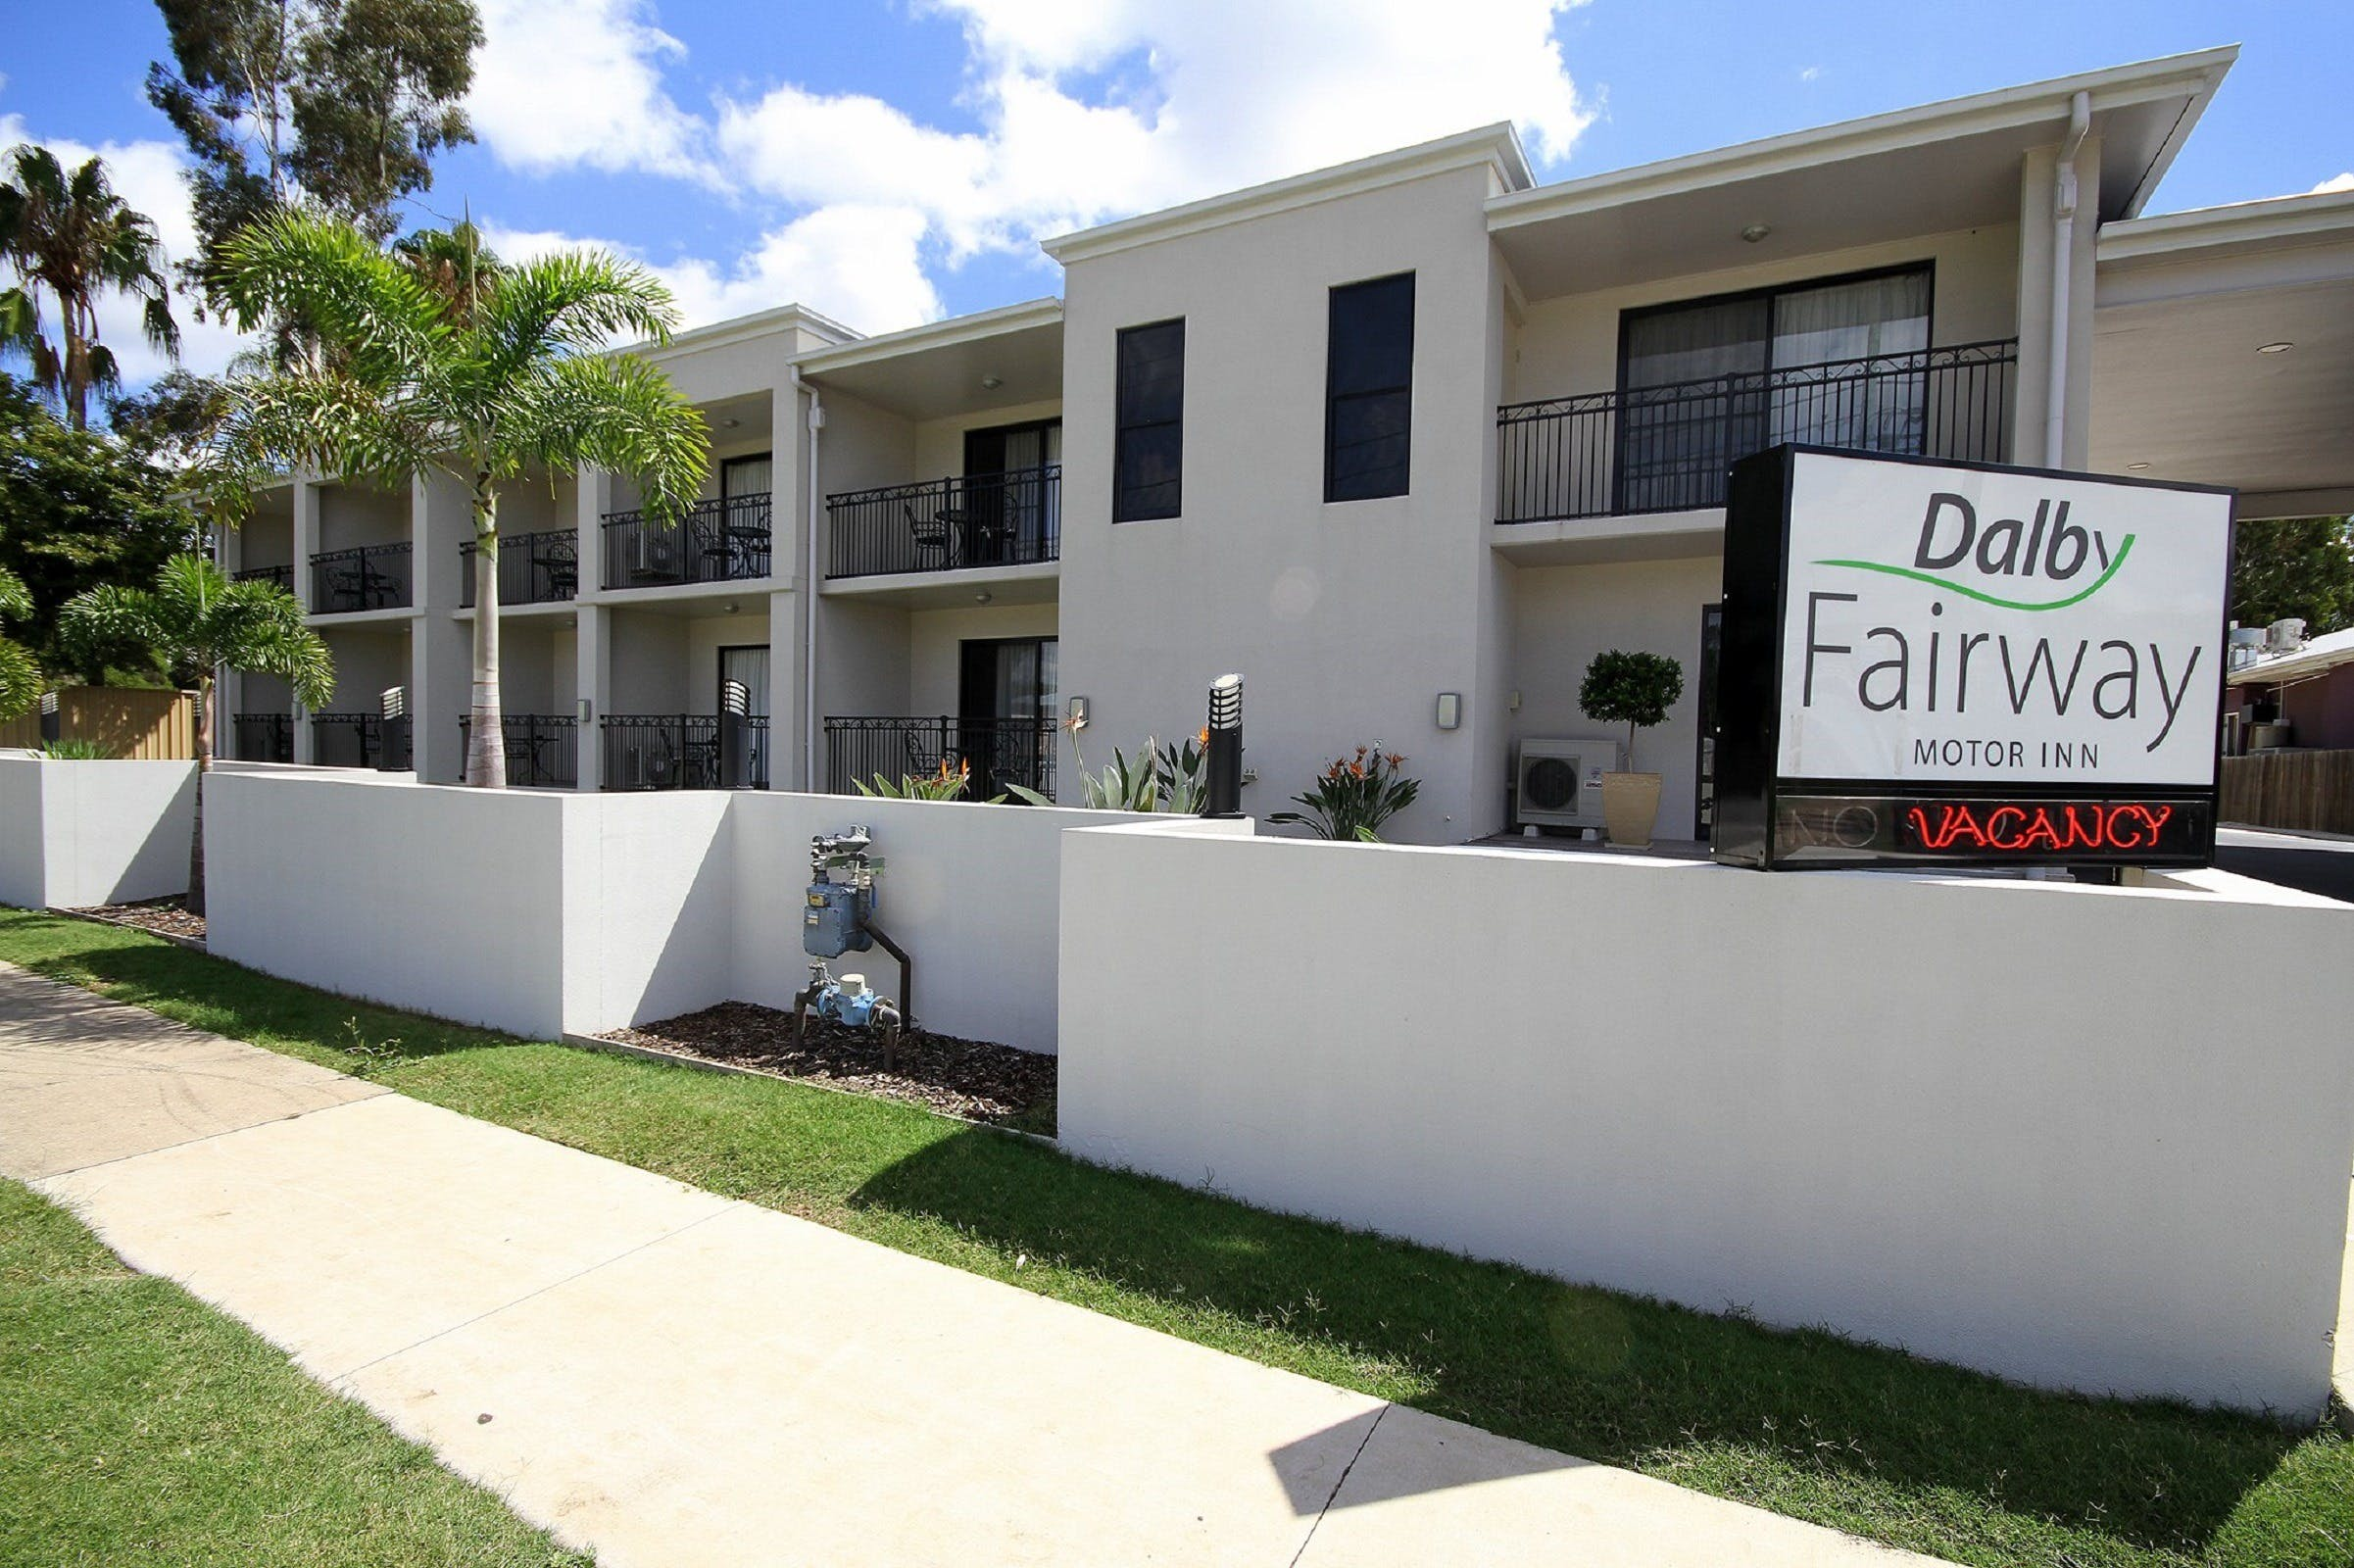 Dalby Fairway Motor Inn - Surfers Paradise Gold Coast